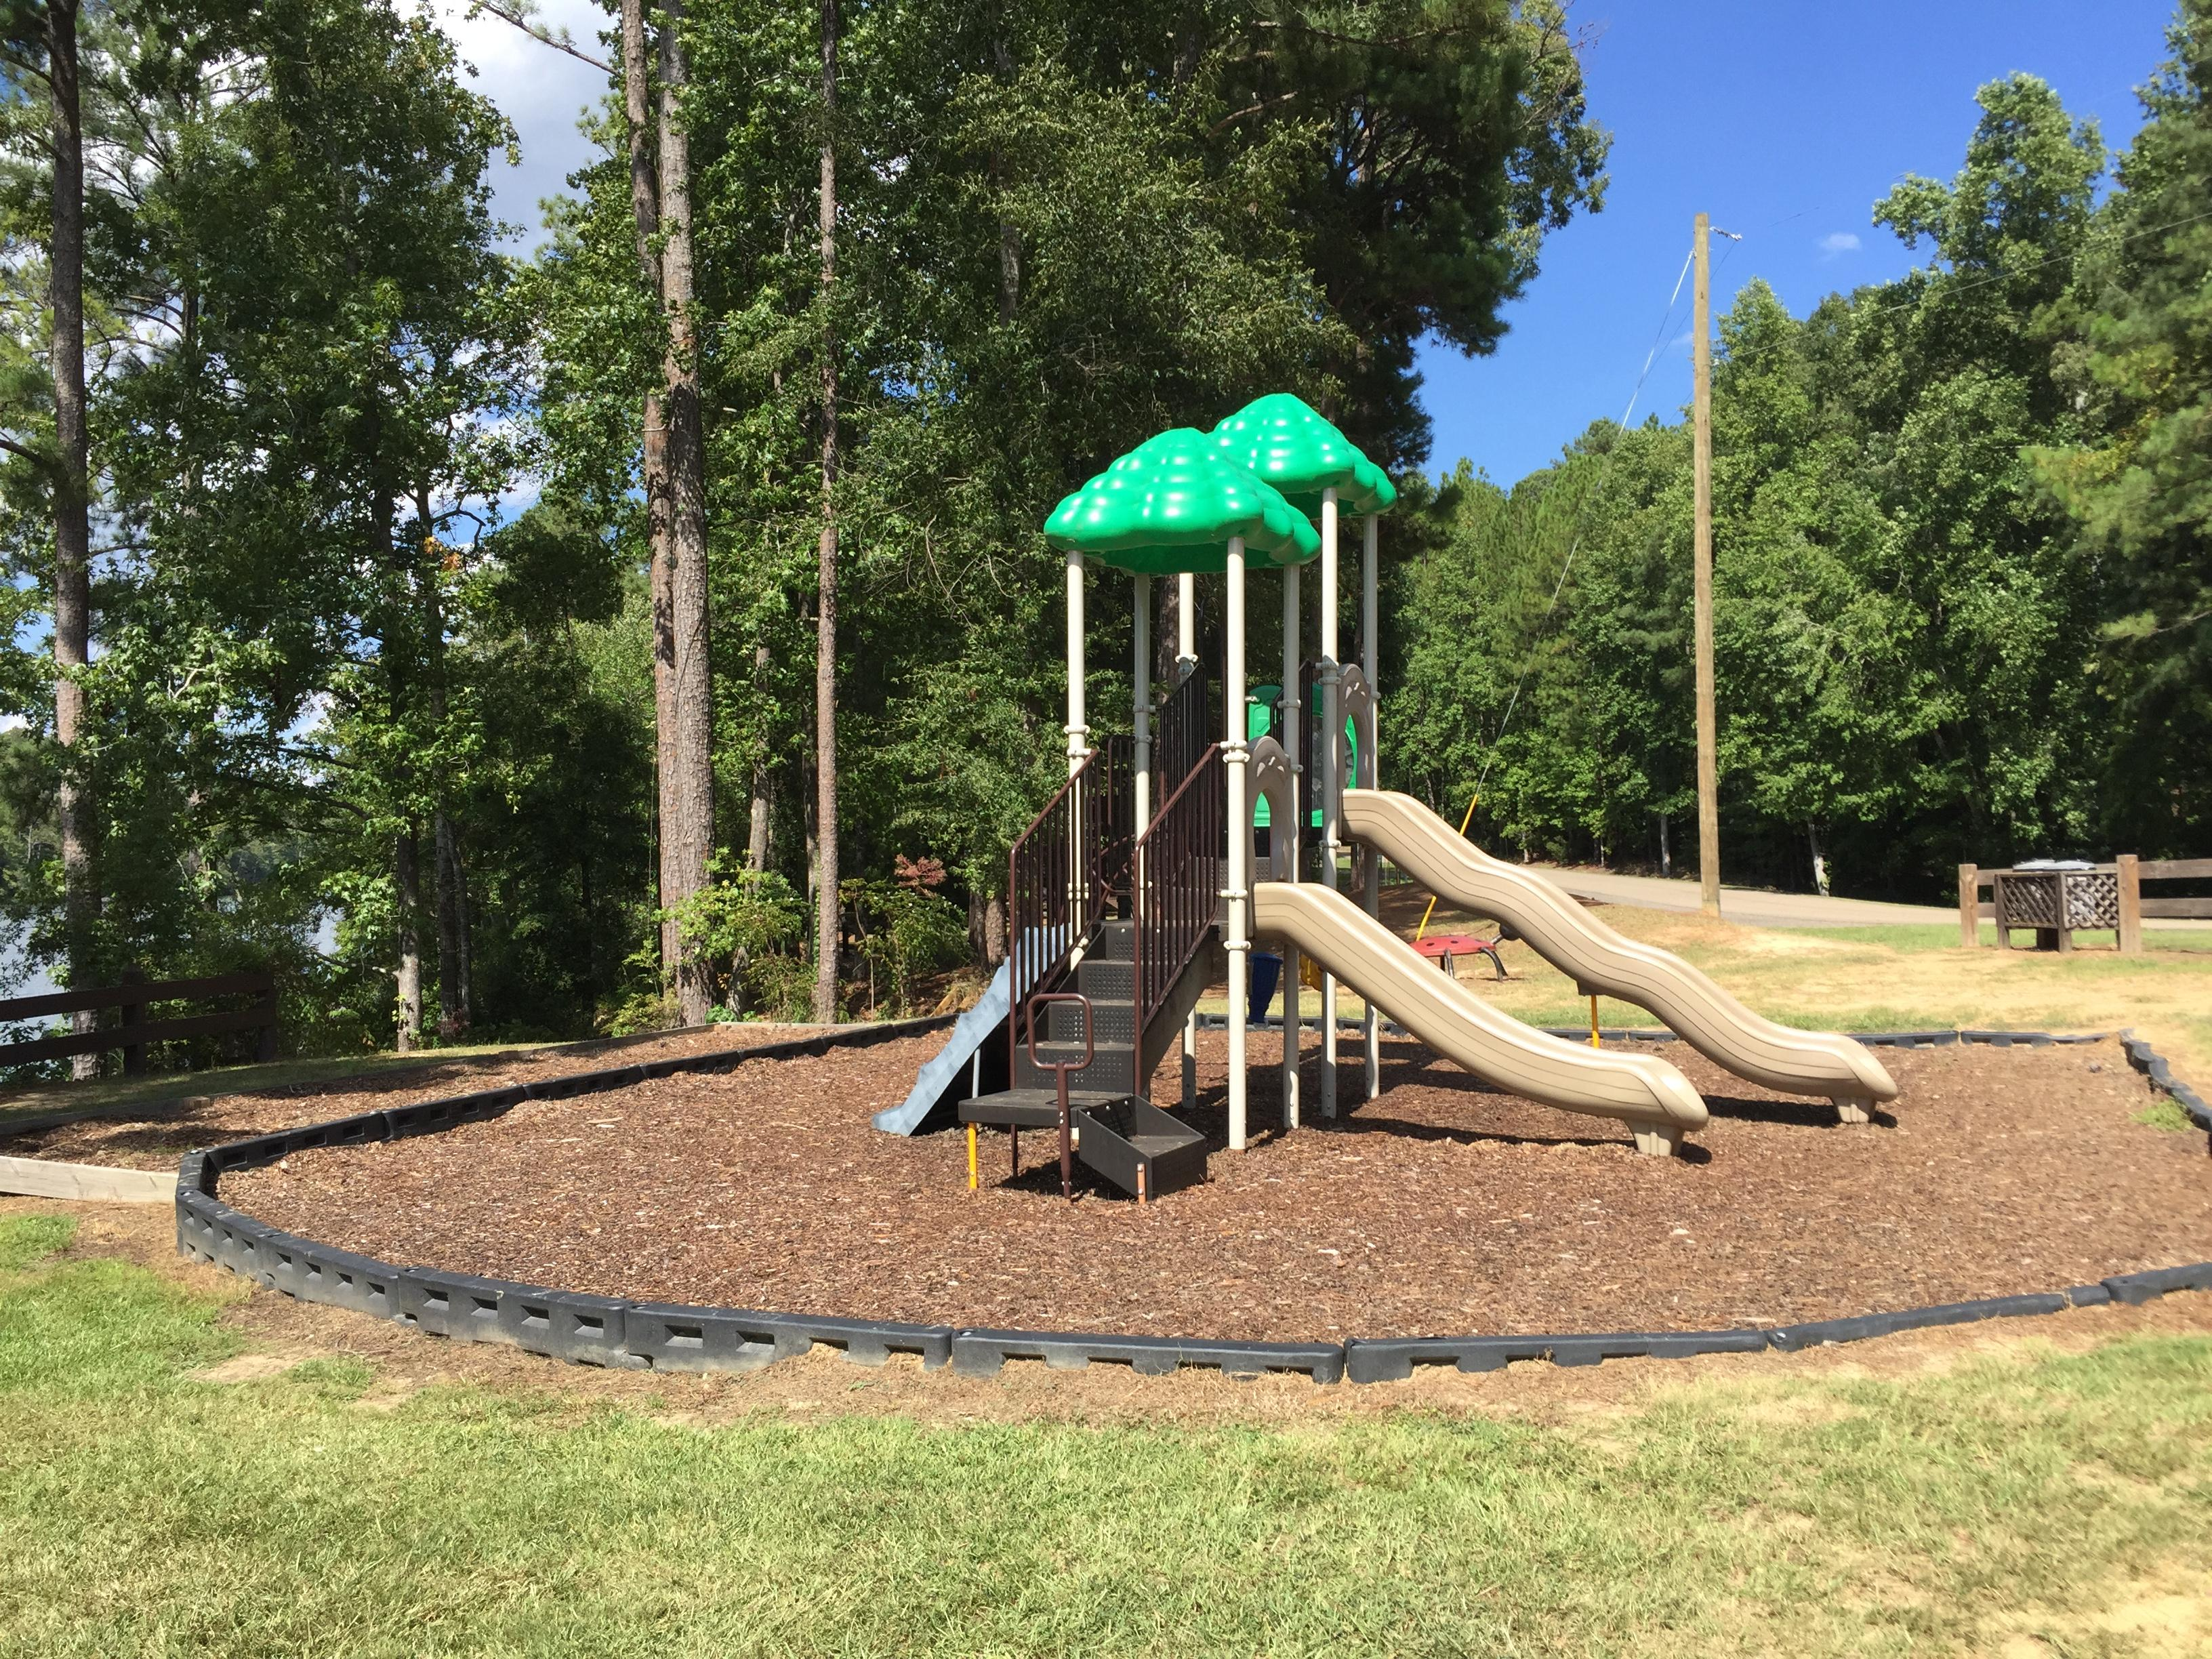 Playground Lake Lurleen